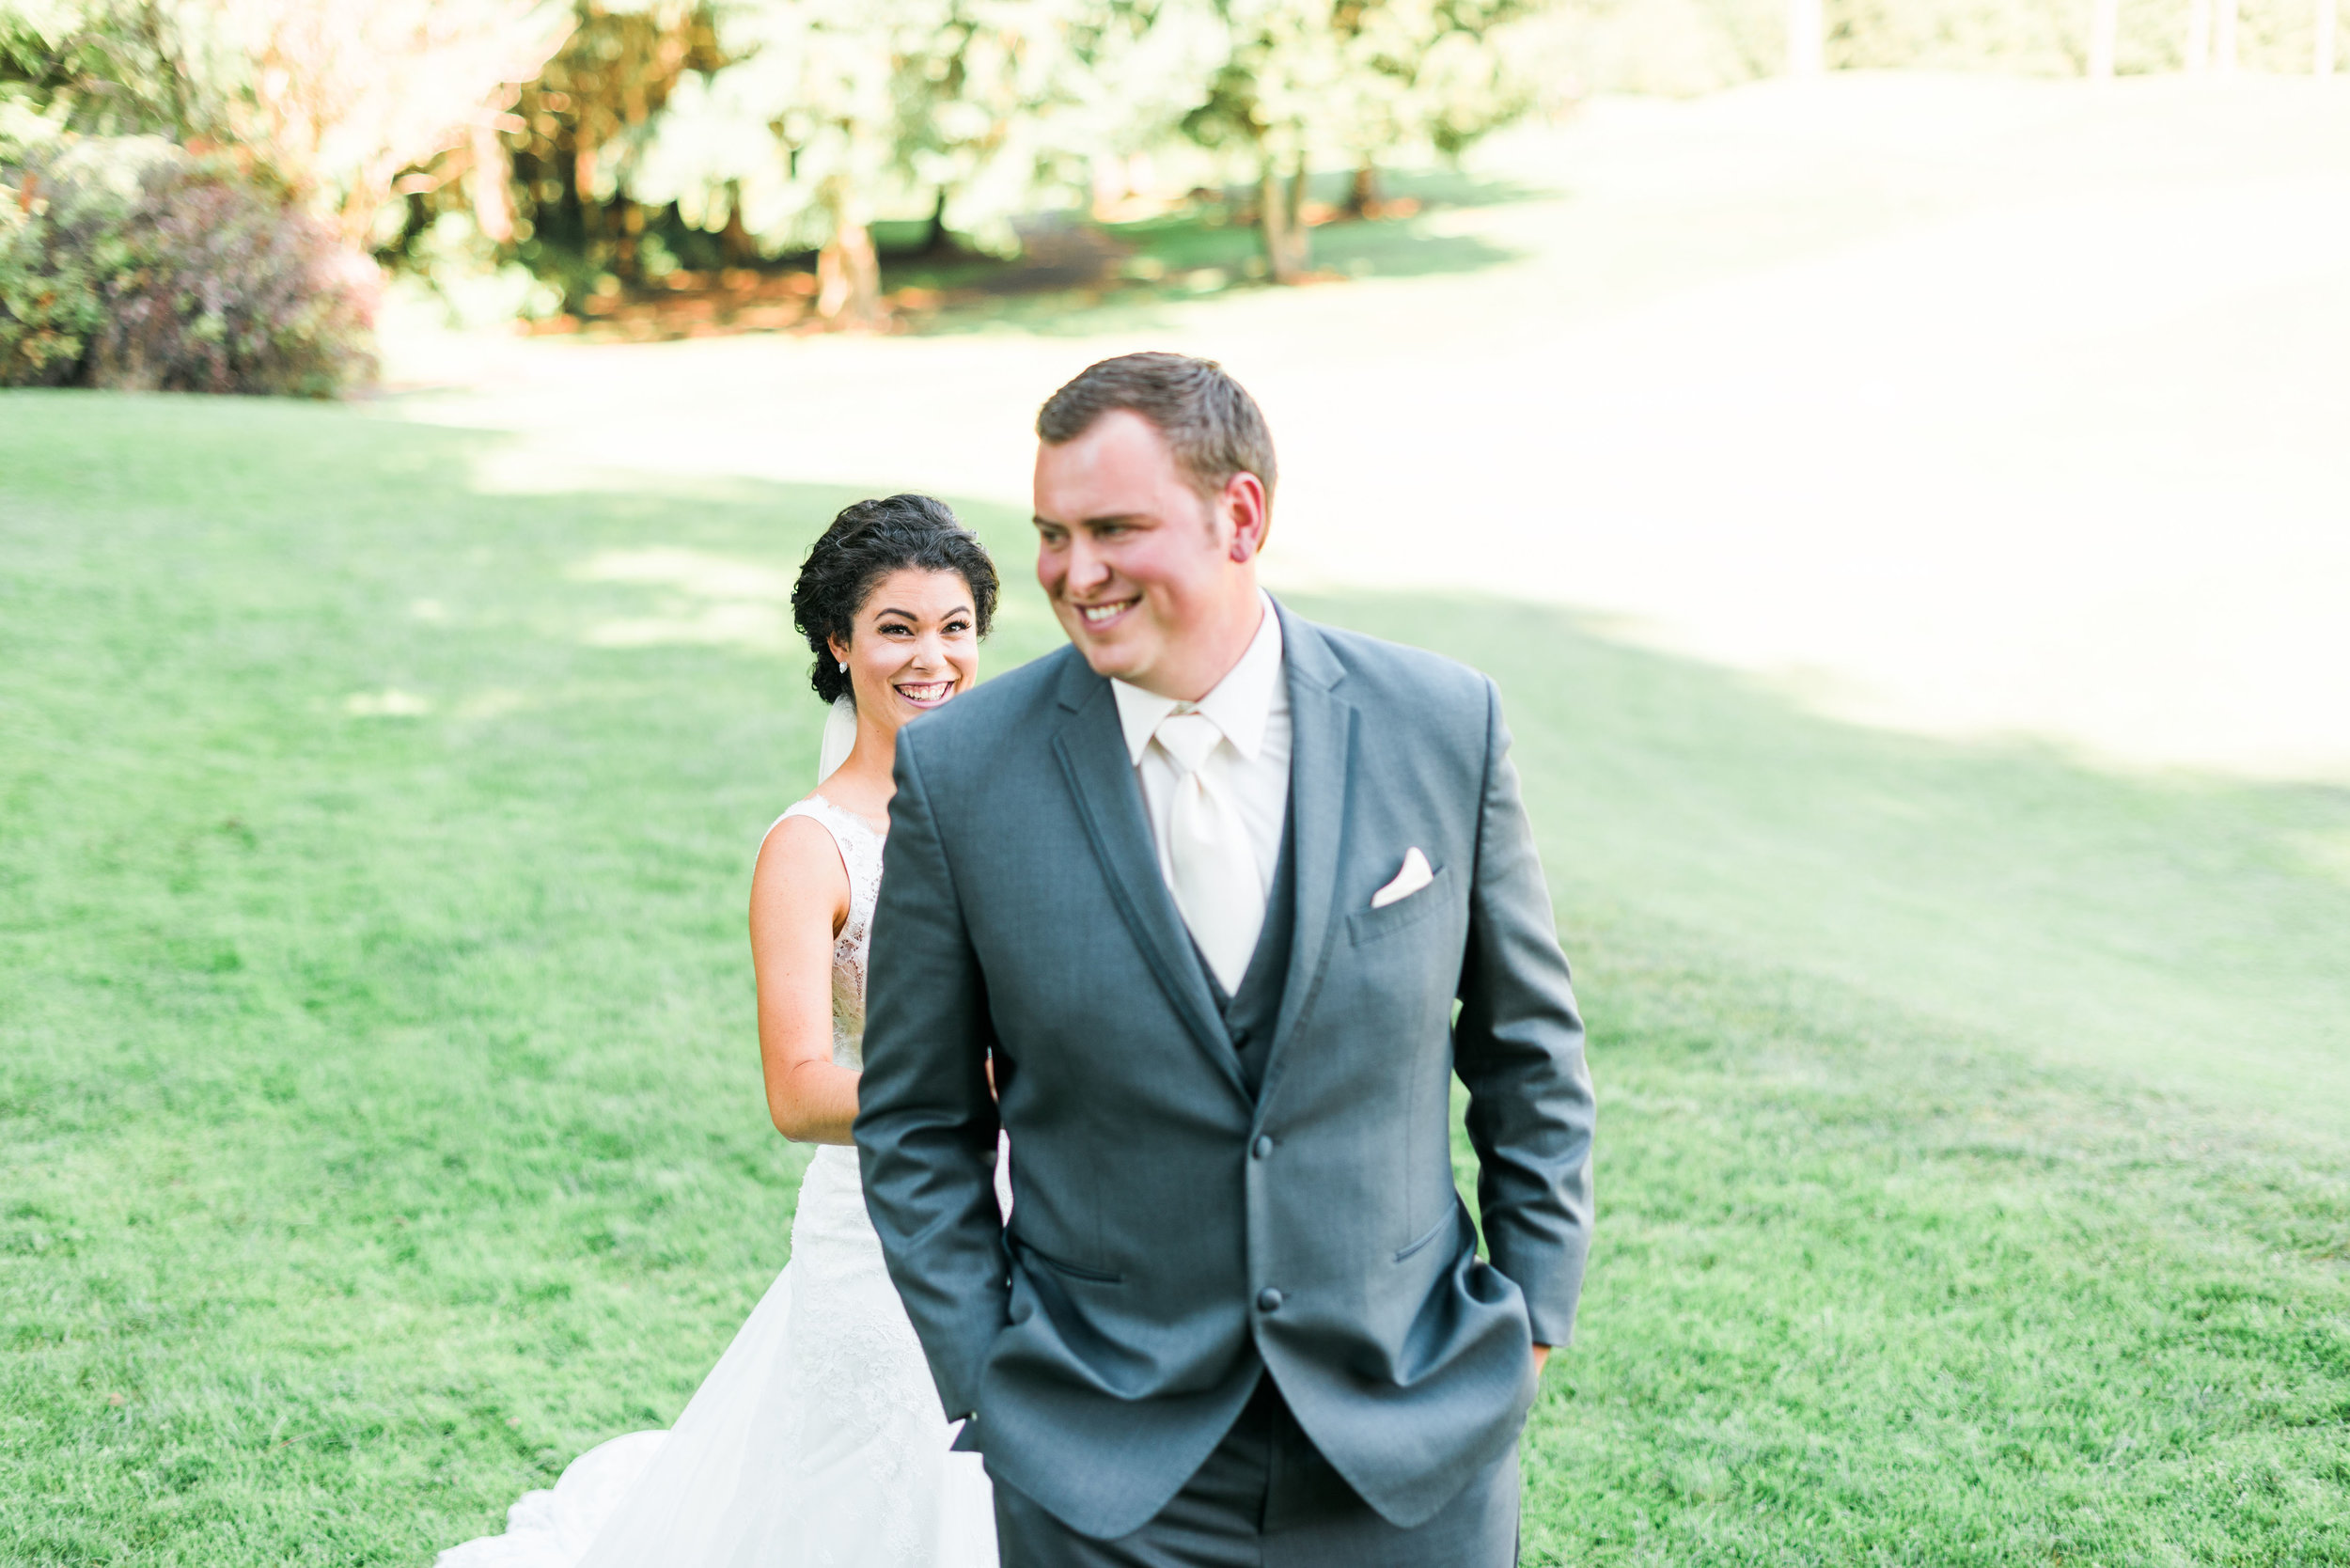 Brooke Summers Photography | Mary + Mitchell Wedding